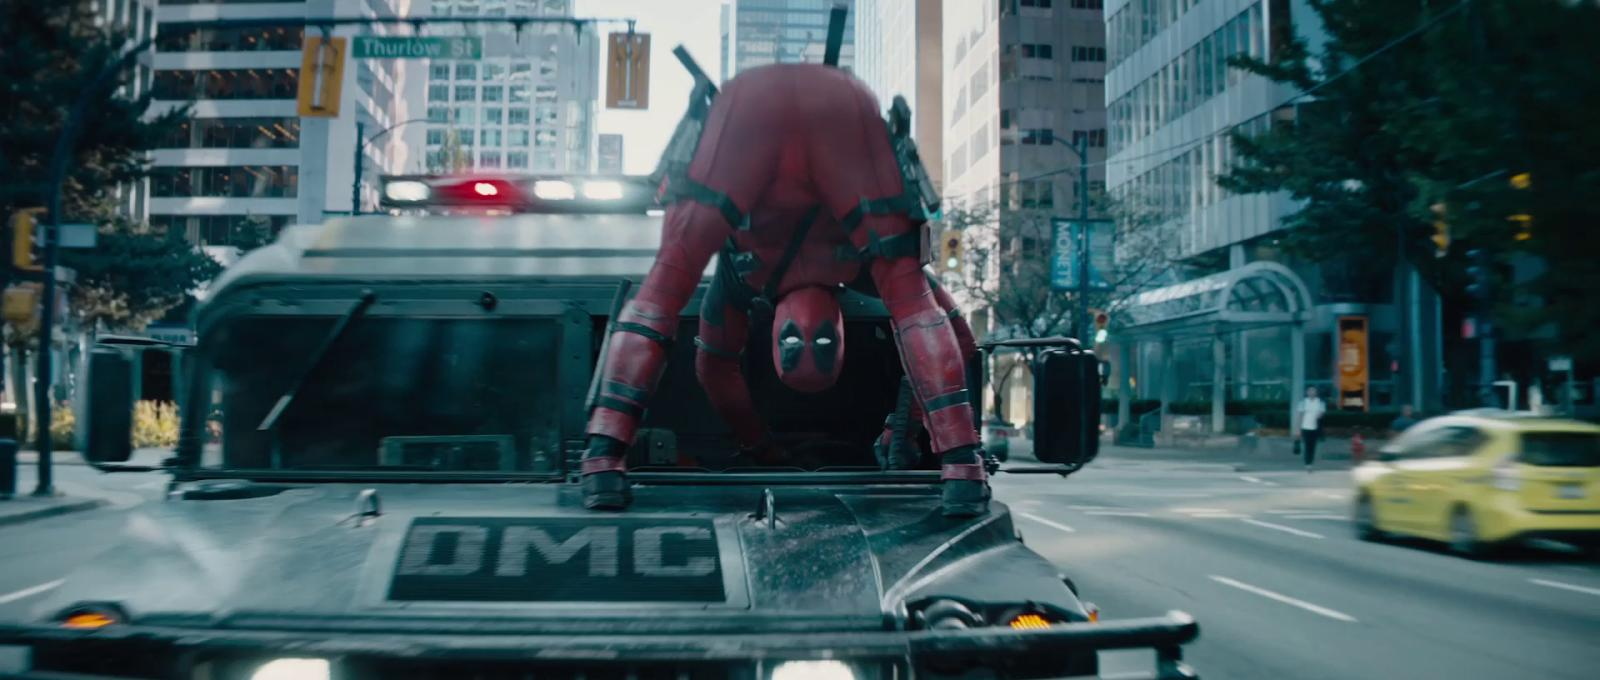 Deadpool 2' Tops Box Office With $125M Opening Weekend | Fortune